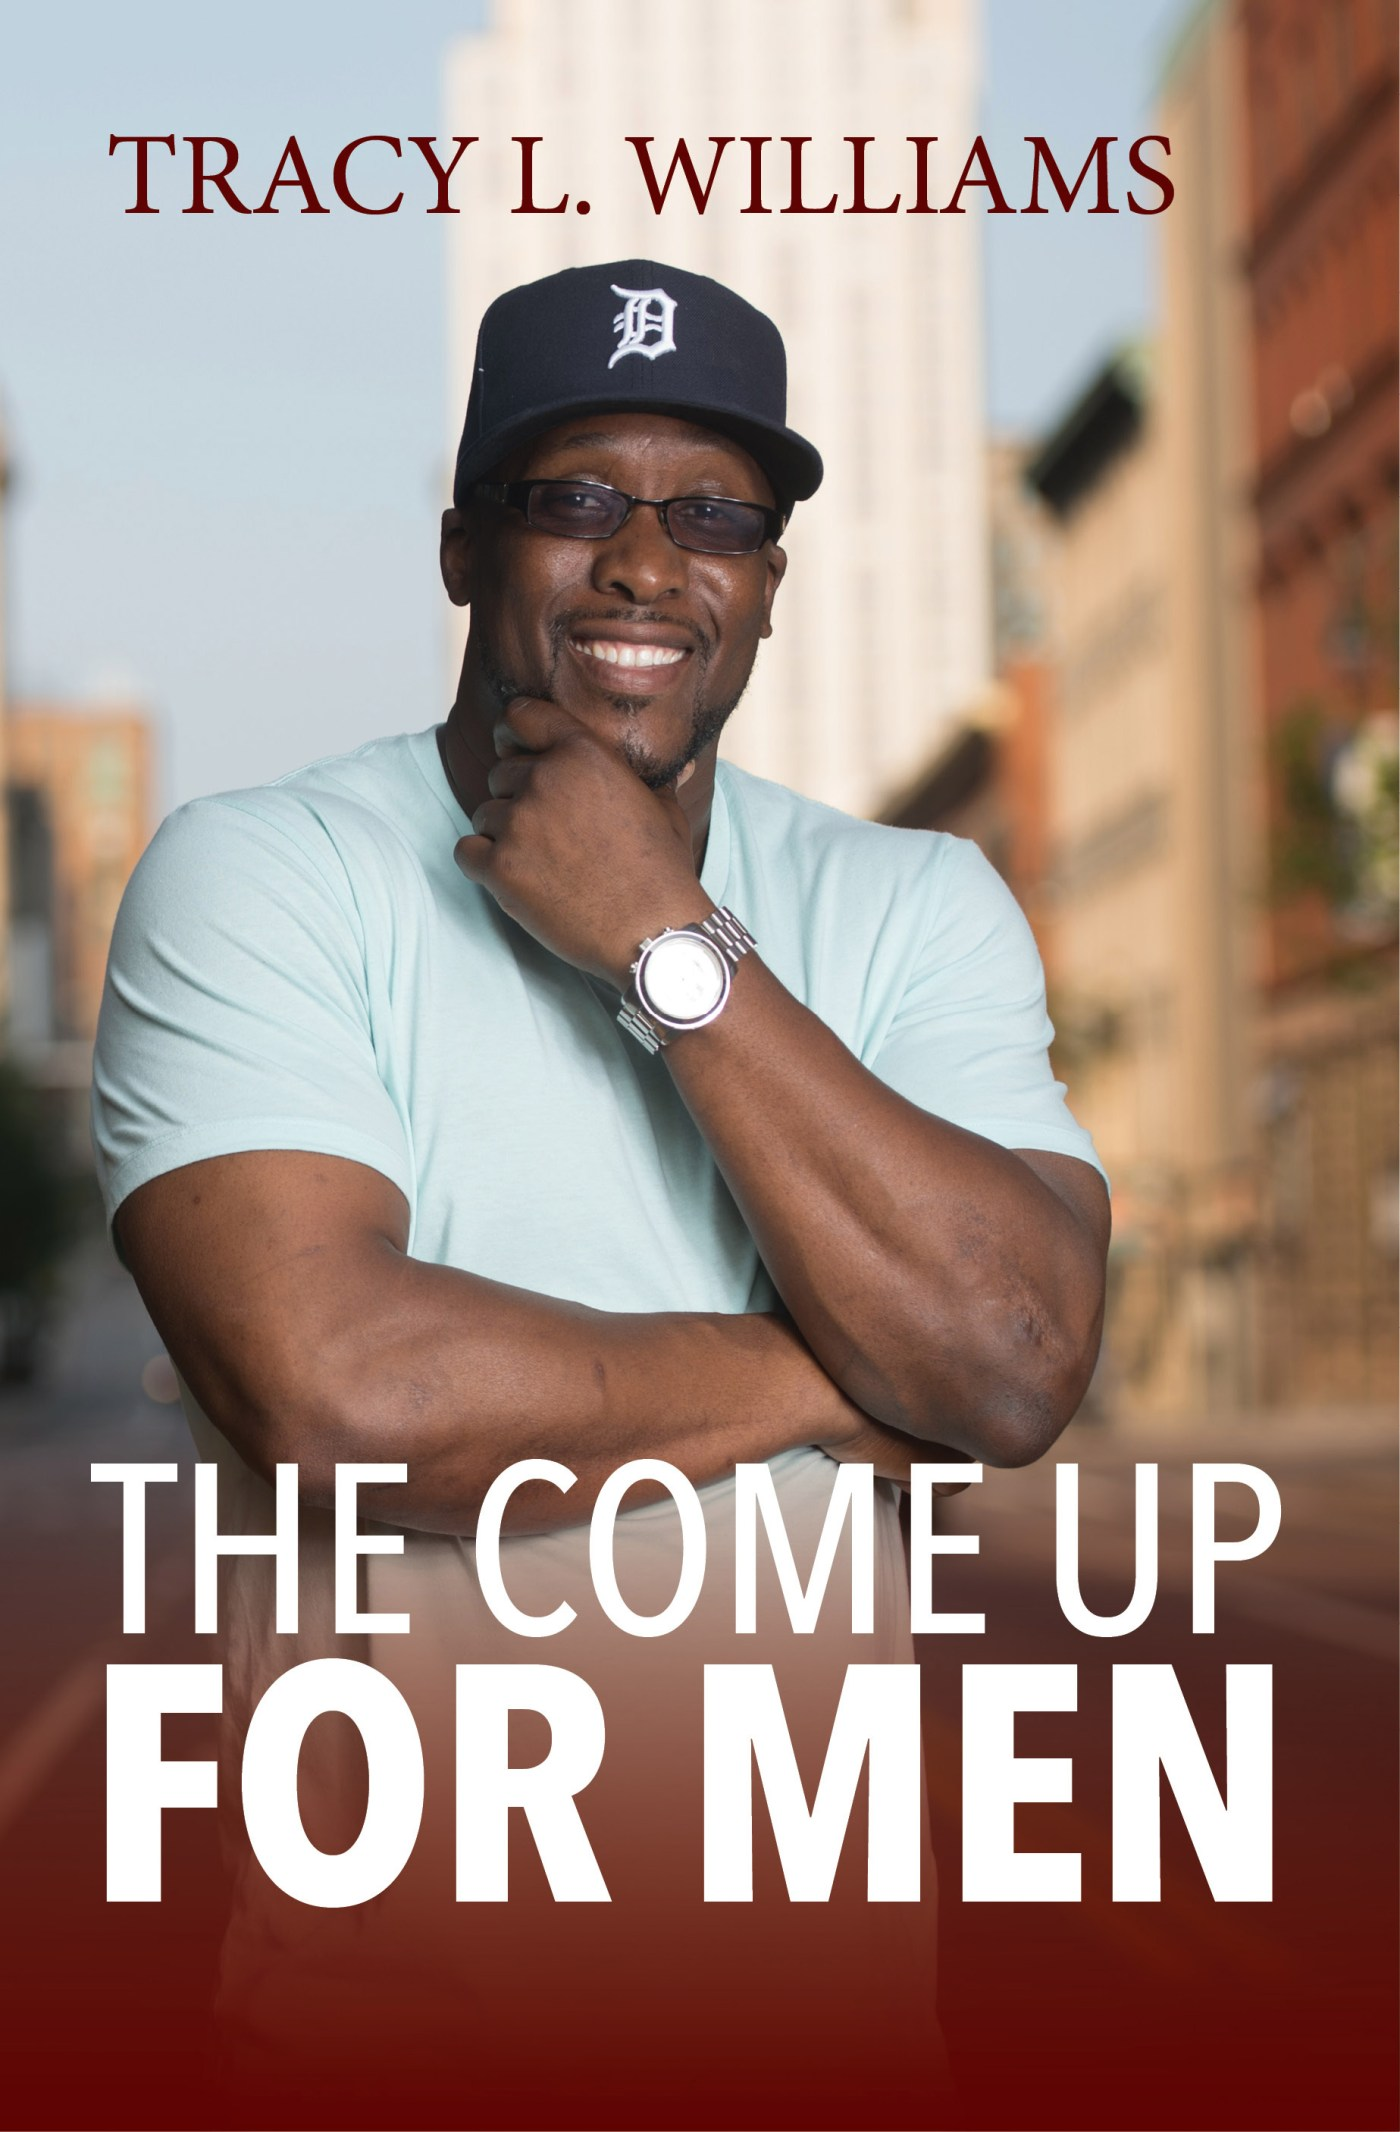 Building Community for Men is a Must!